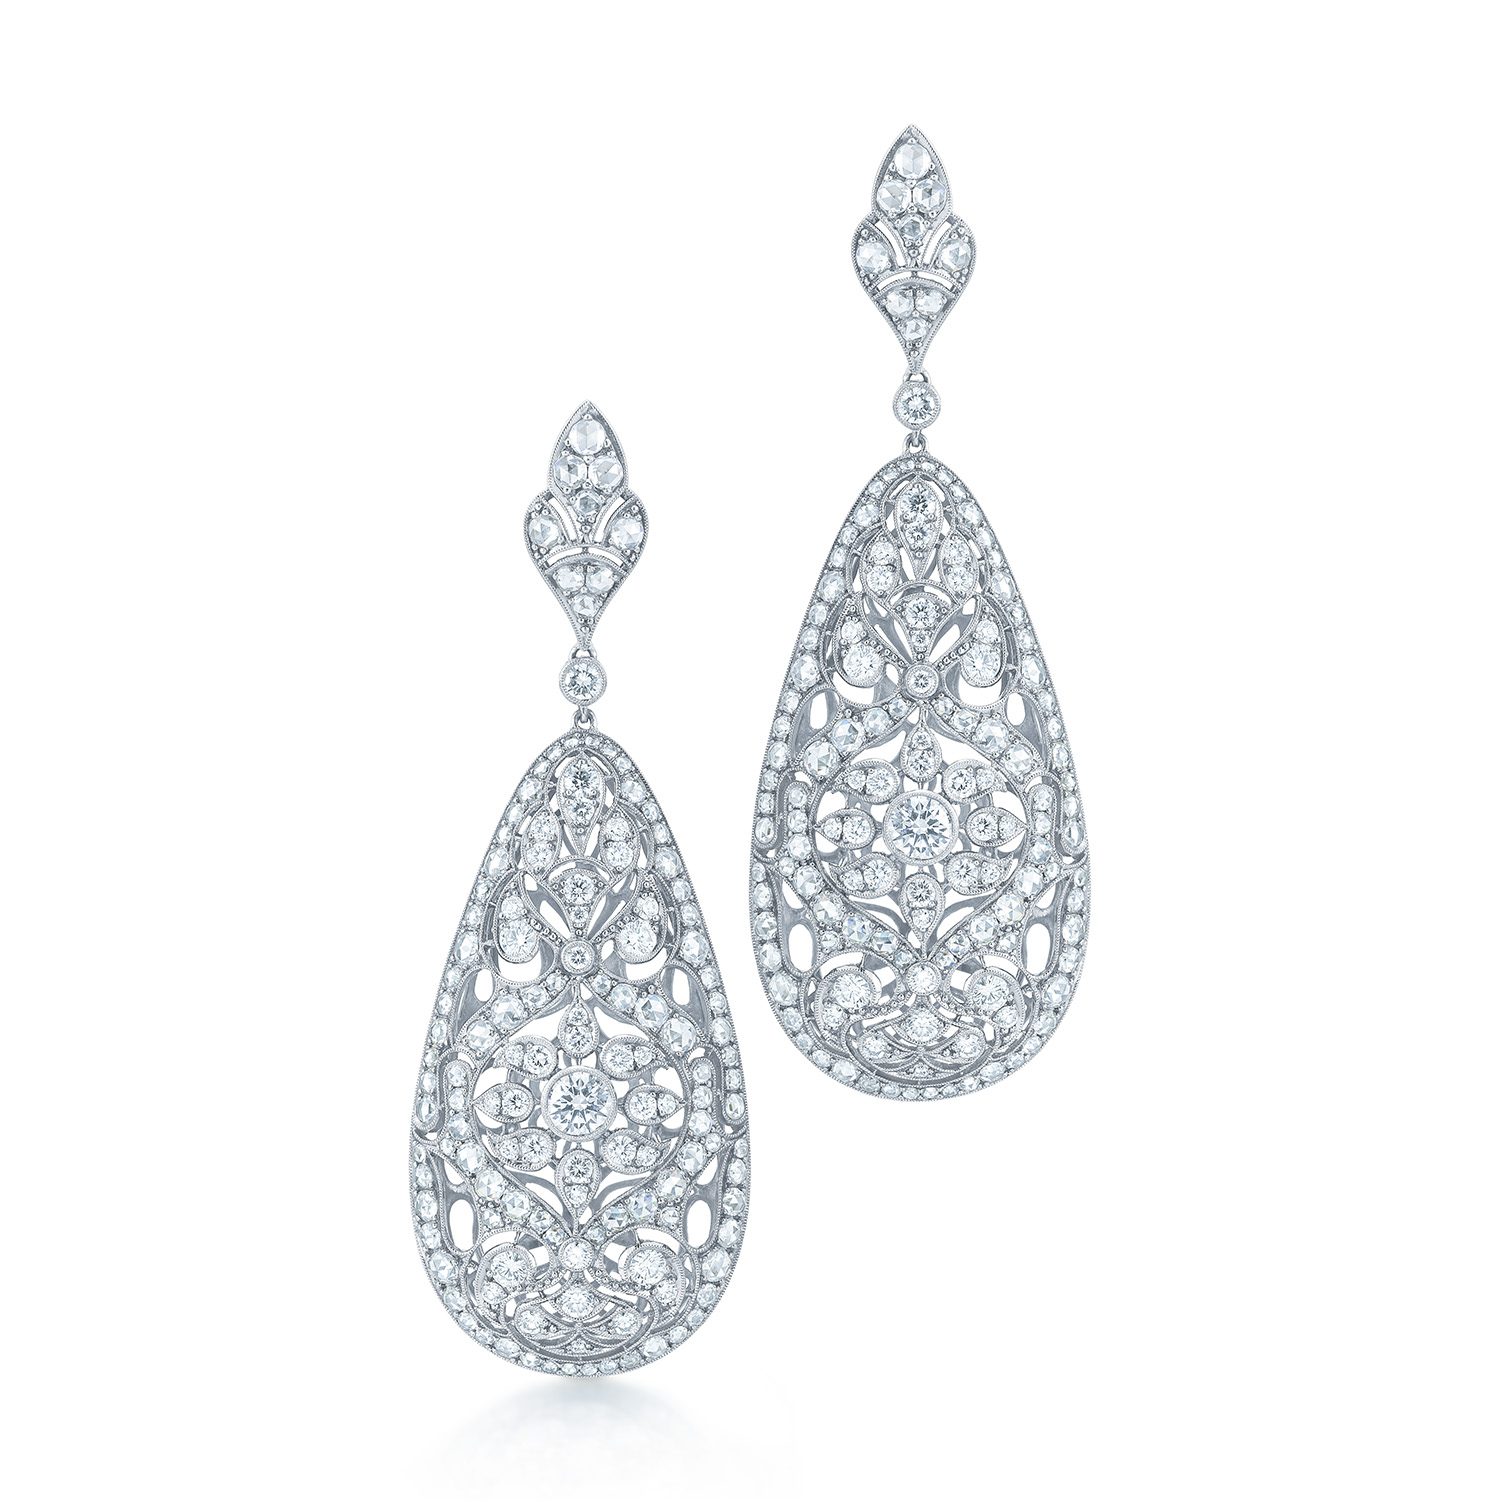 Diamond Filigree Drop Earrings In 18k White Gold Kwiat Vintage Style 28347